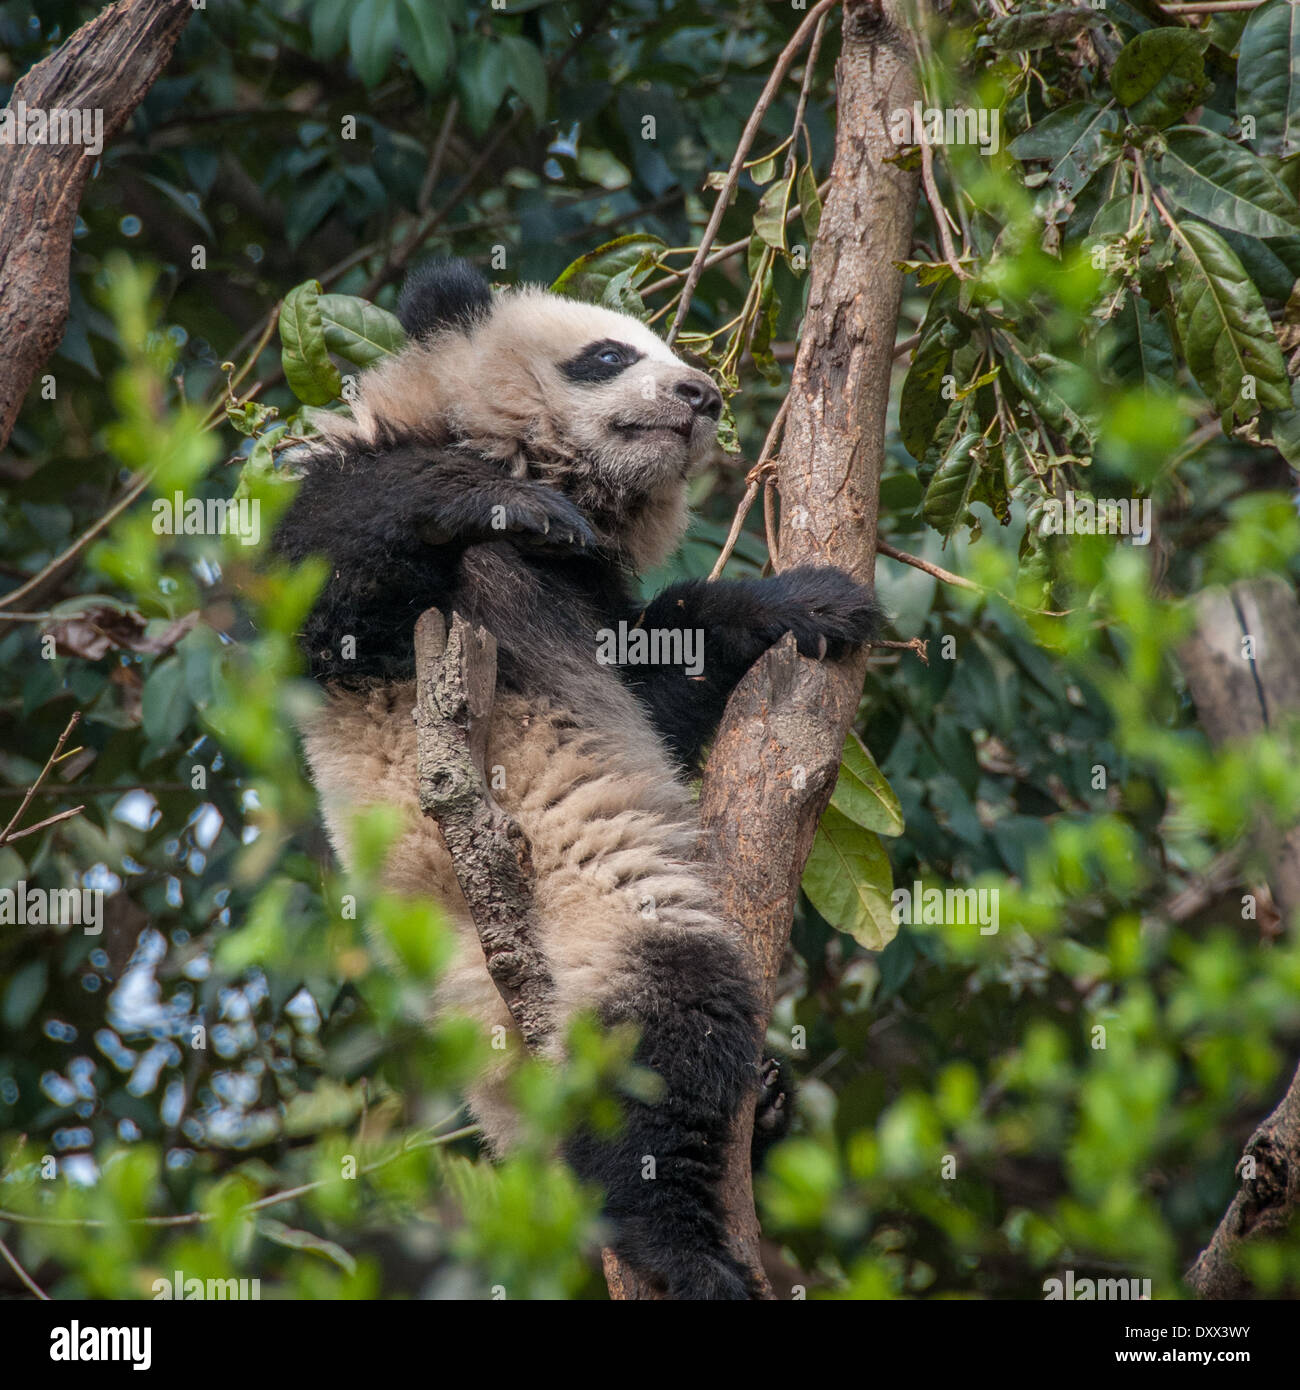 Giant panda wedged between branches in a tree - Stock Image